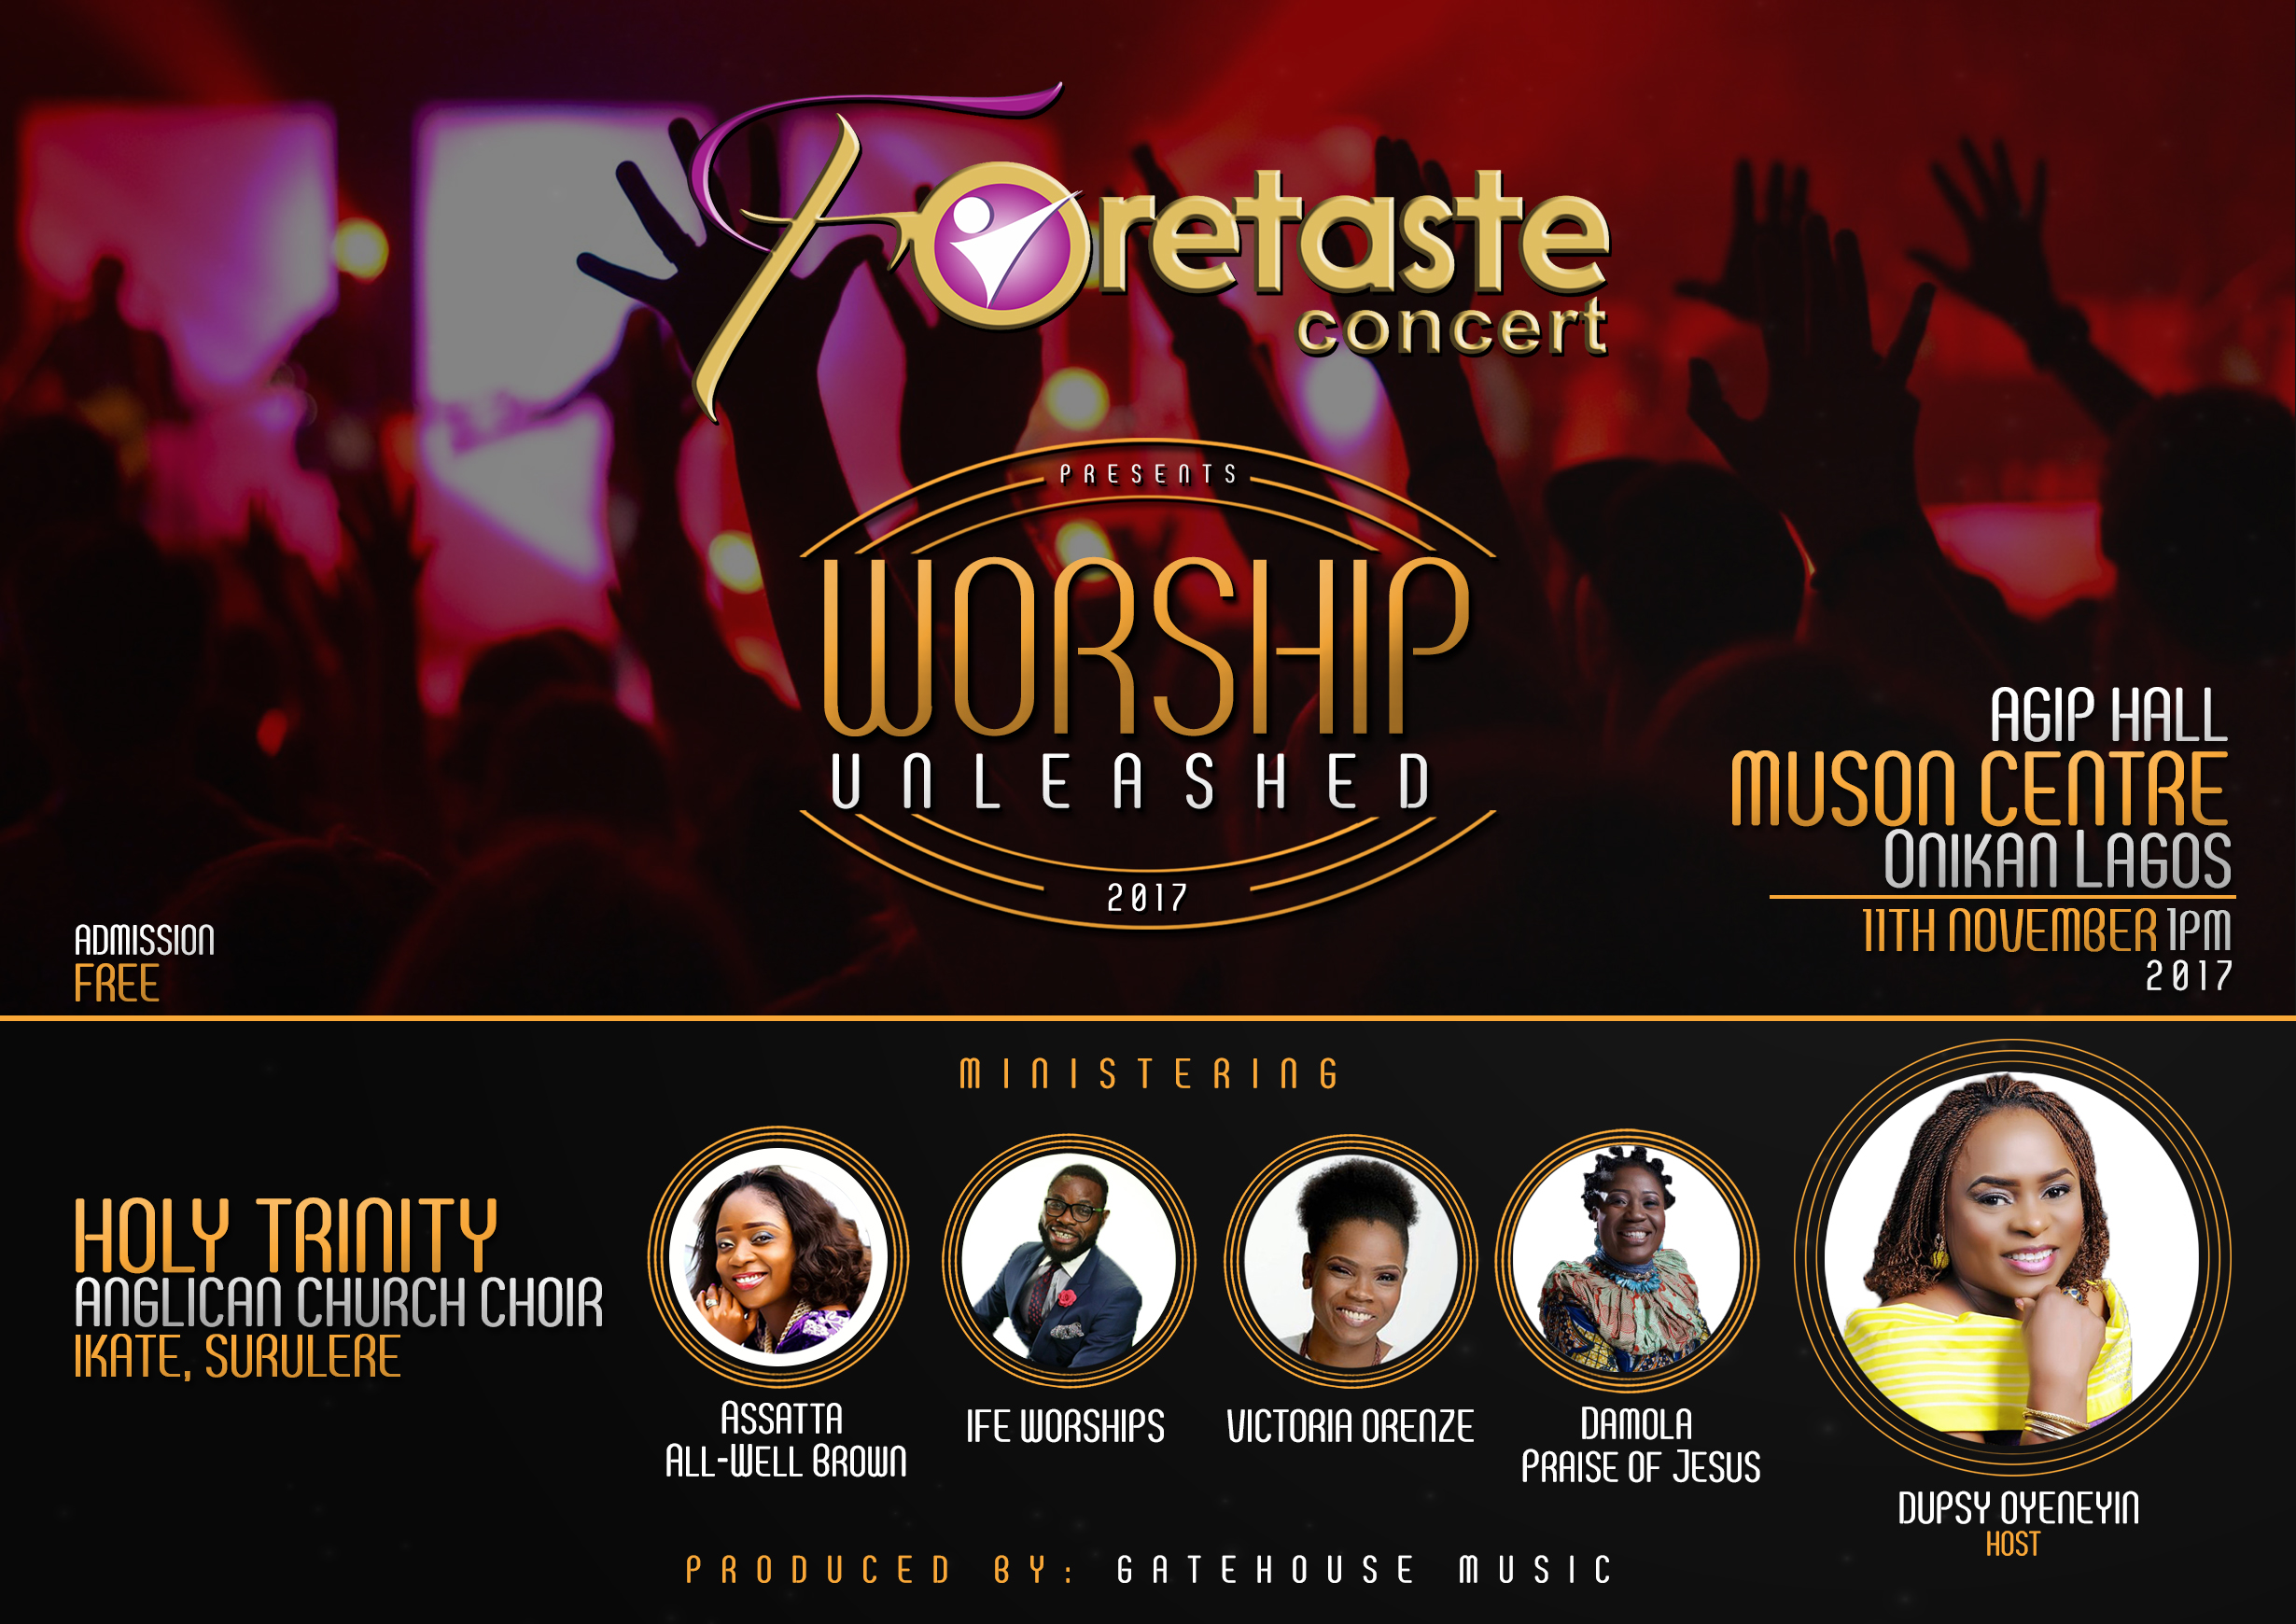 Event: Foretaste Concert Presents